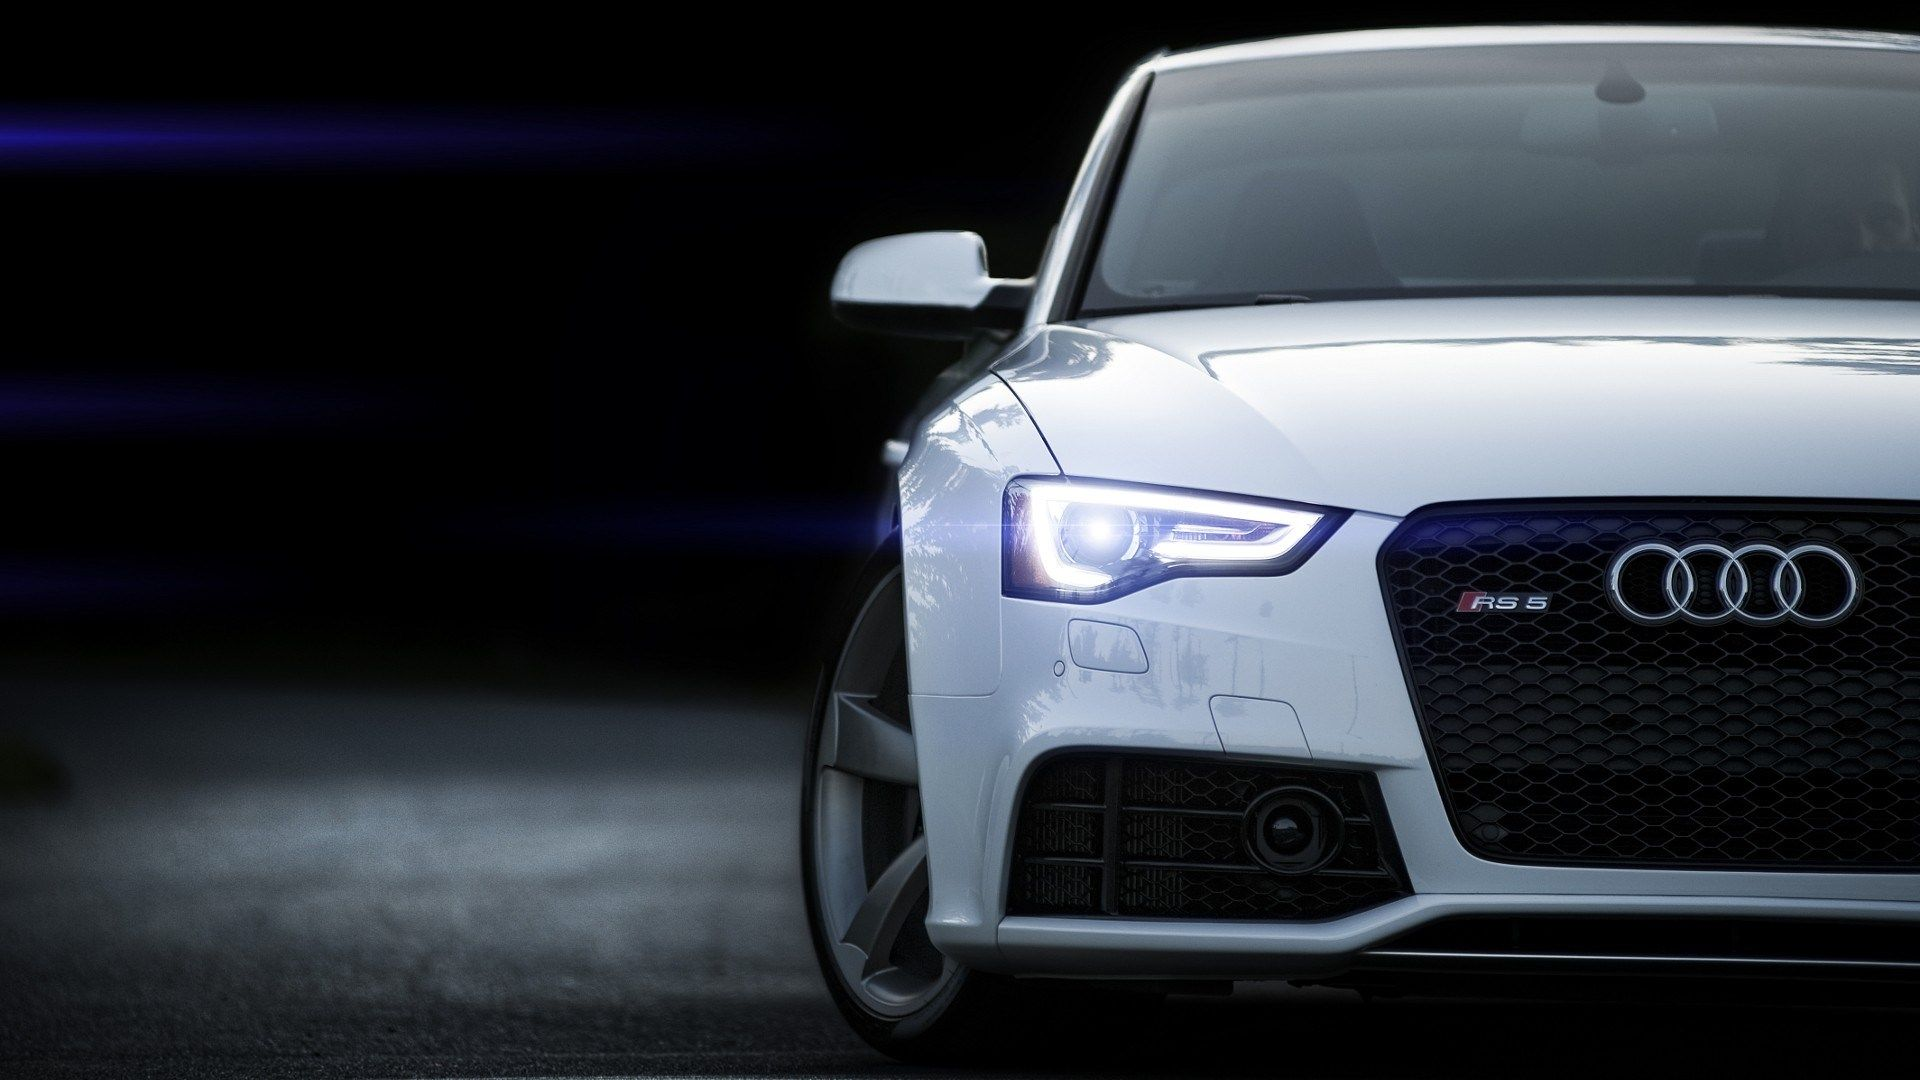 Audi Wallpaper 1920x1080 Background